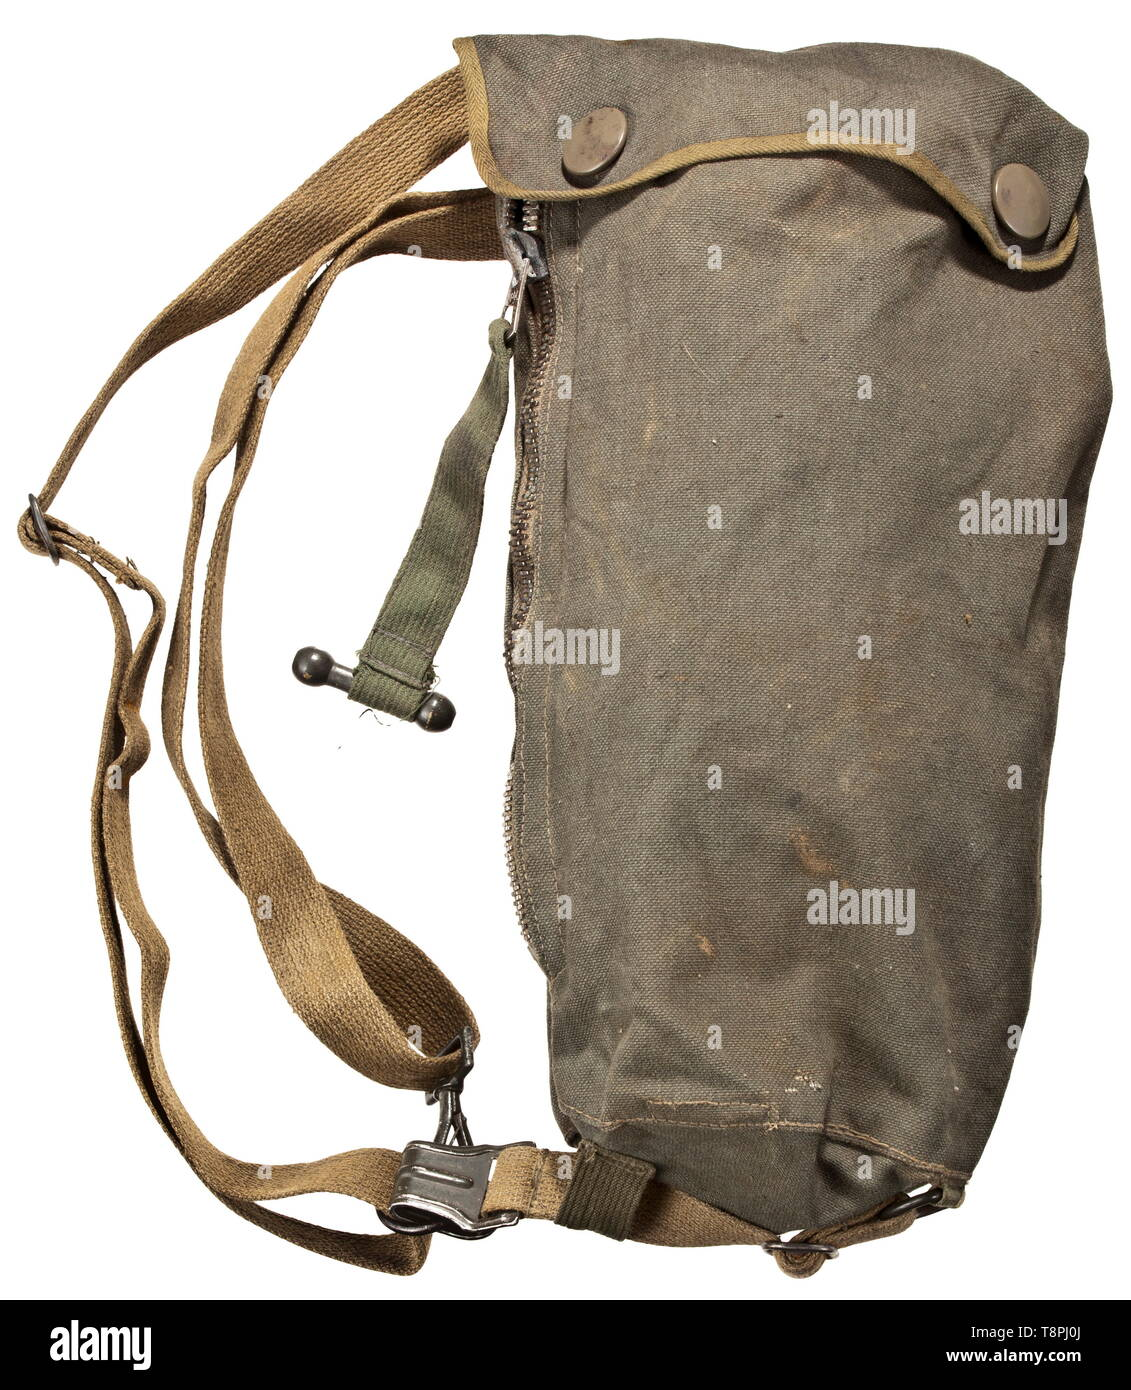 A gas mask bag for paratroopers without visible code or maker Field-green, fine, meticulously stitched linen web material, the reverse inside with compartment for anti-fogging discs, underneath sturdy leather edging. The cover with large PRYM push buttons, lateral zip closure, the slide signed 'Riachl' and extended by webbing with a wooden toggle. Khaki coloured carry straps. historic, historical, 20th century, Editorial-Use-Only - Stock Image